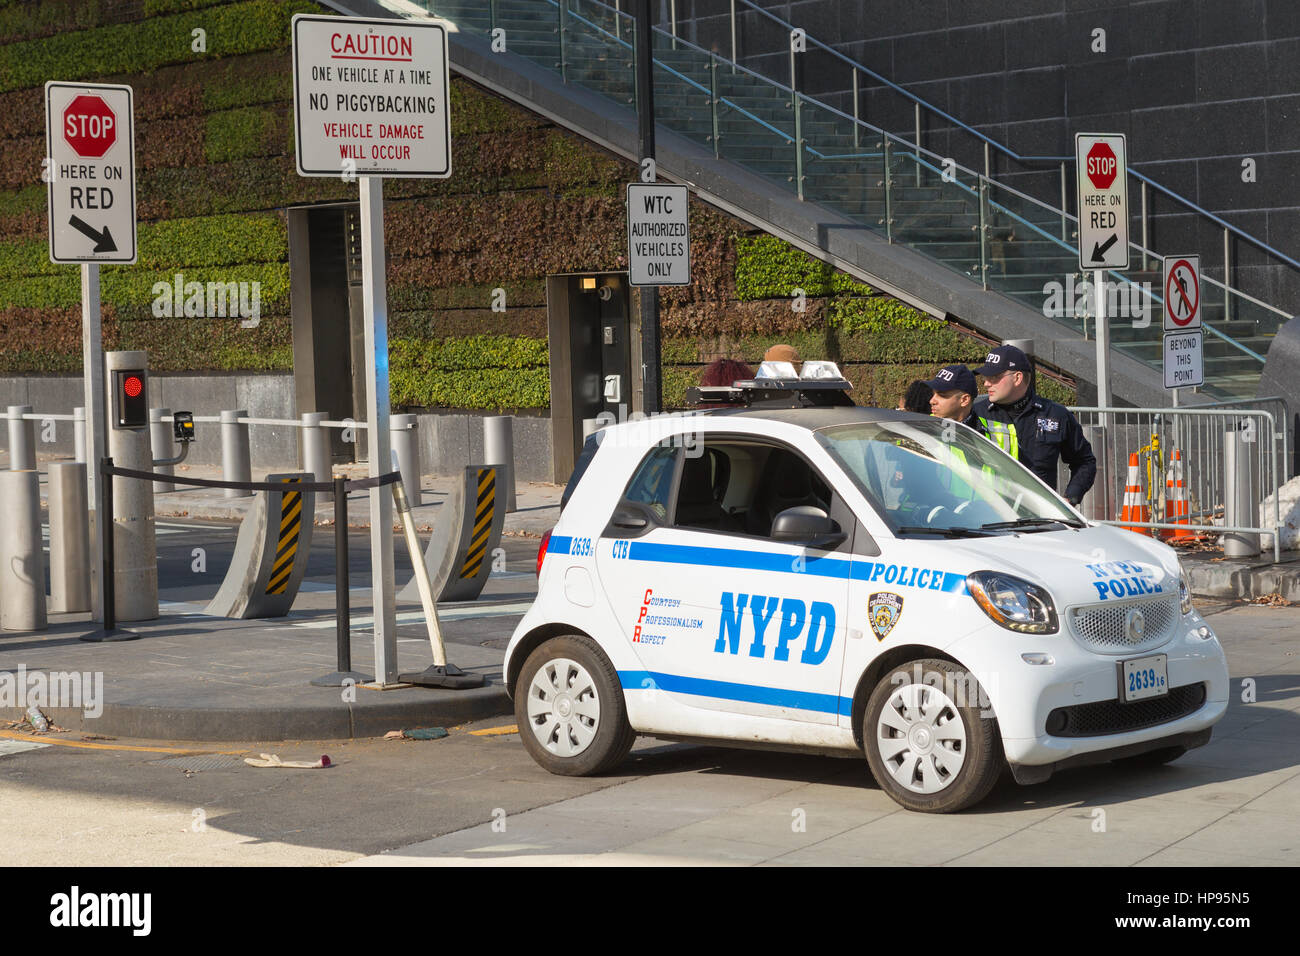 NYPD Counterterrorism Bureau officers, using a new Smart Fortwo smart car, provide security at the World Trade Center - Stock Image